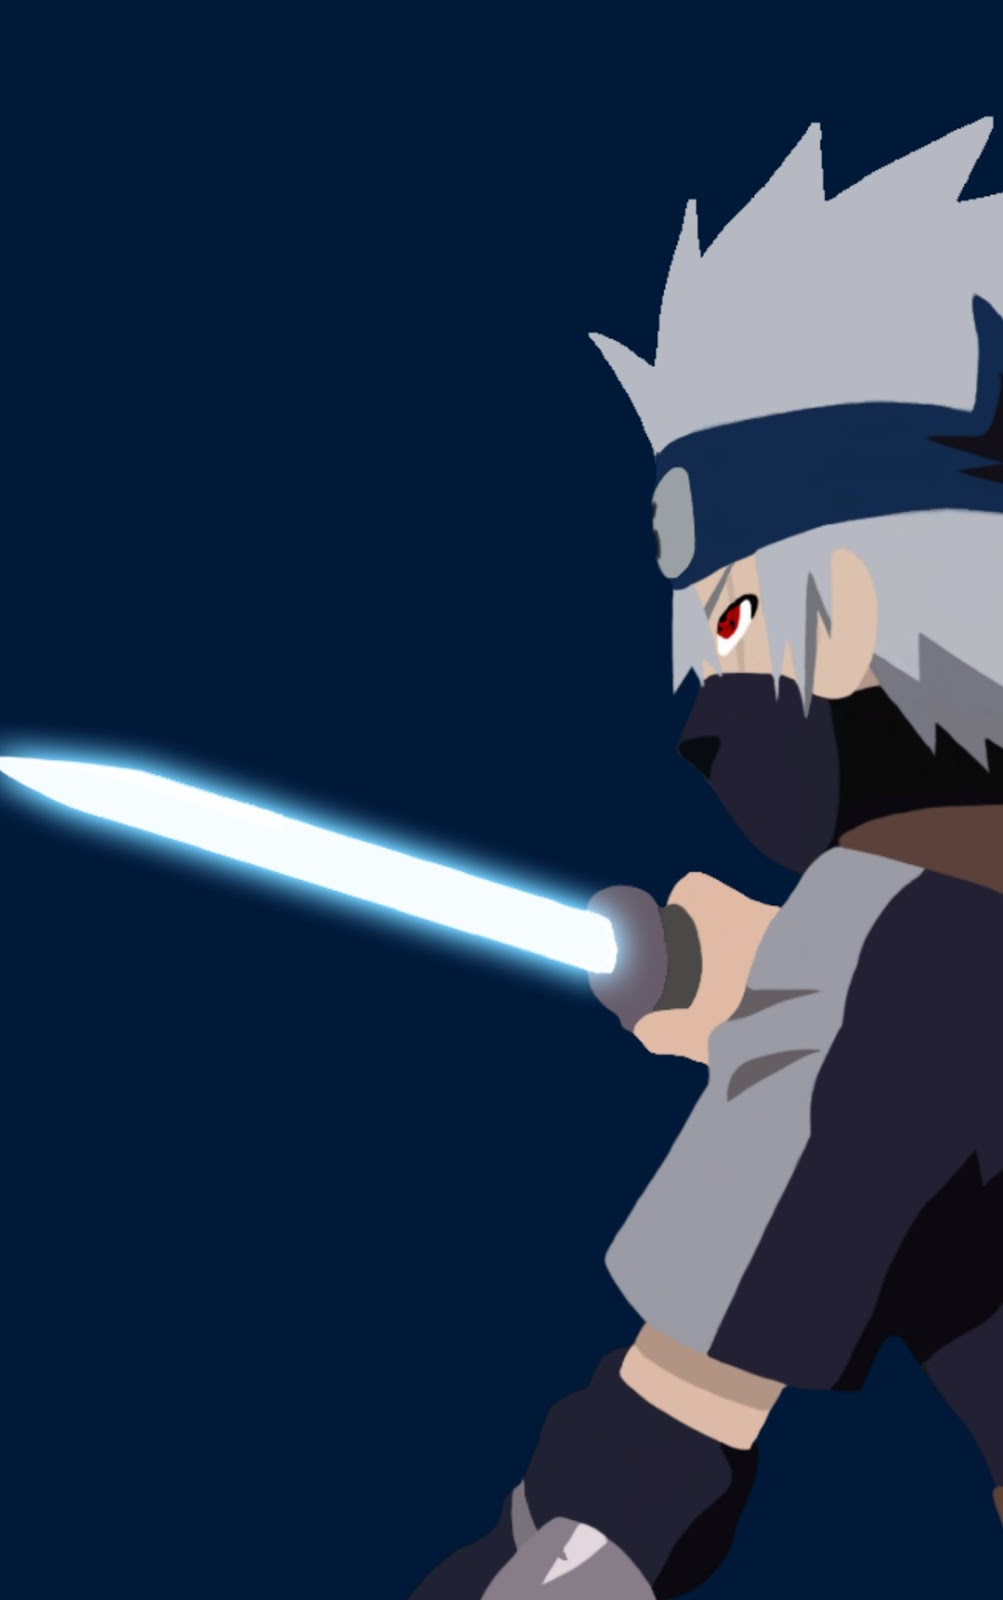 3 Download Wallpaper hatake kakashi vector untuk Android dan Whatsapp